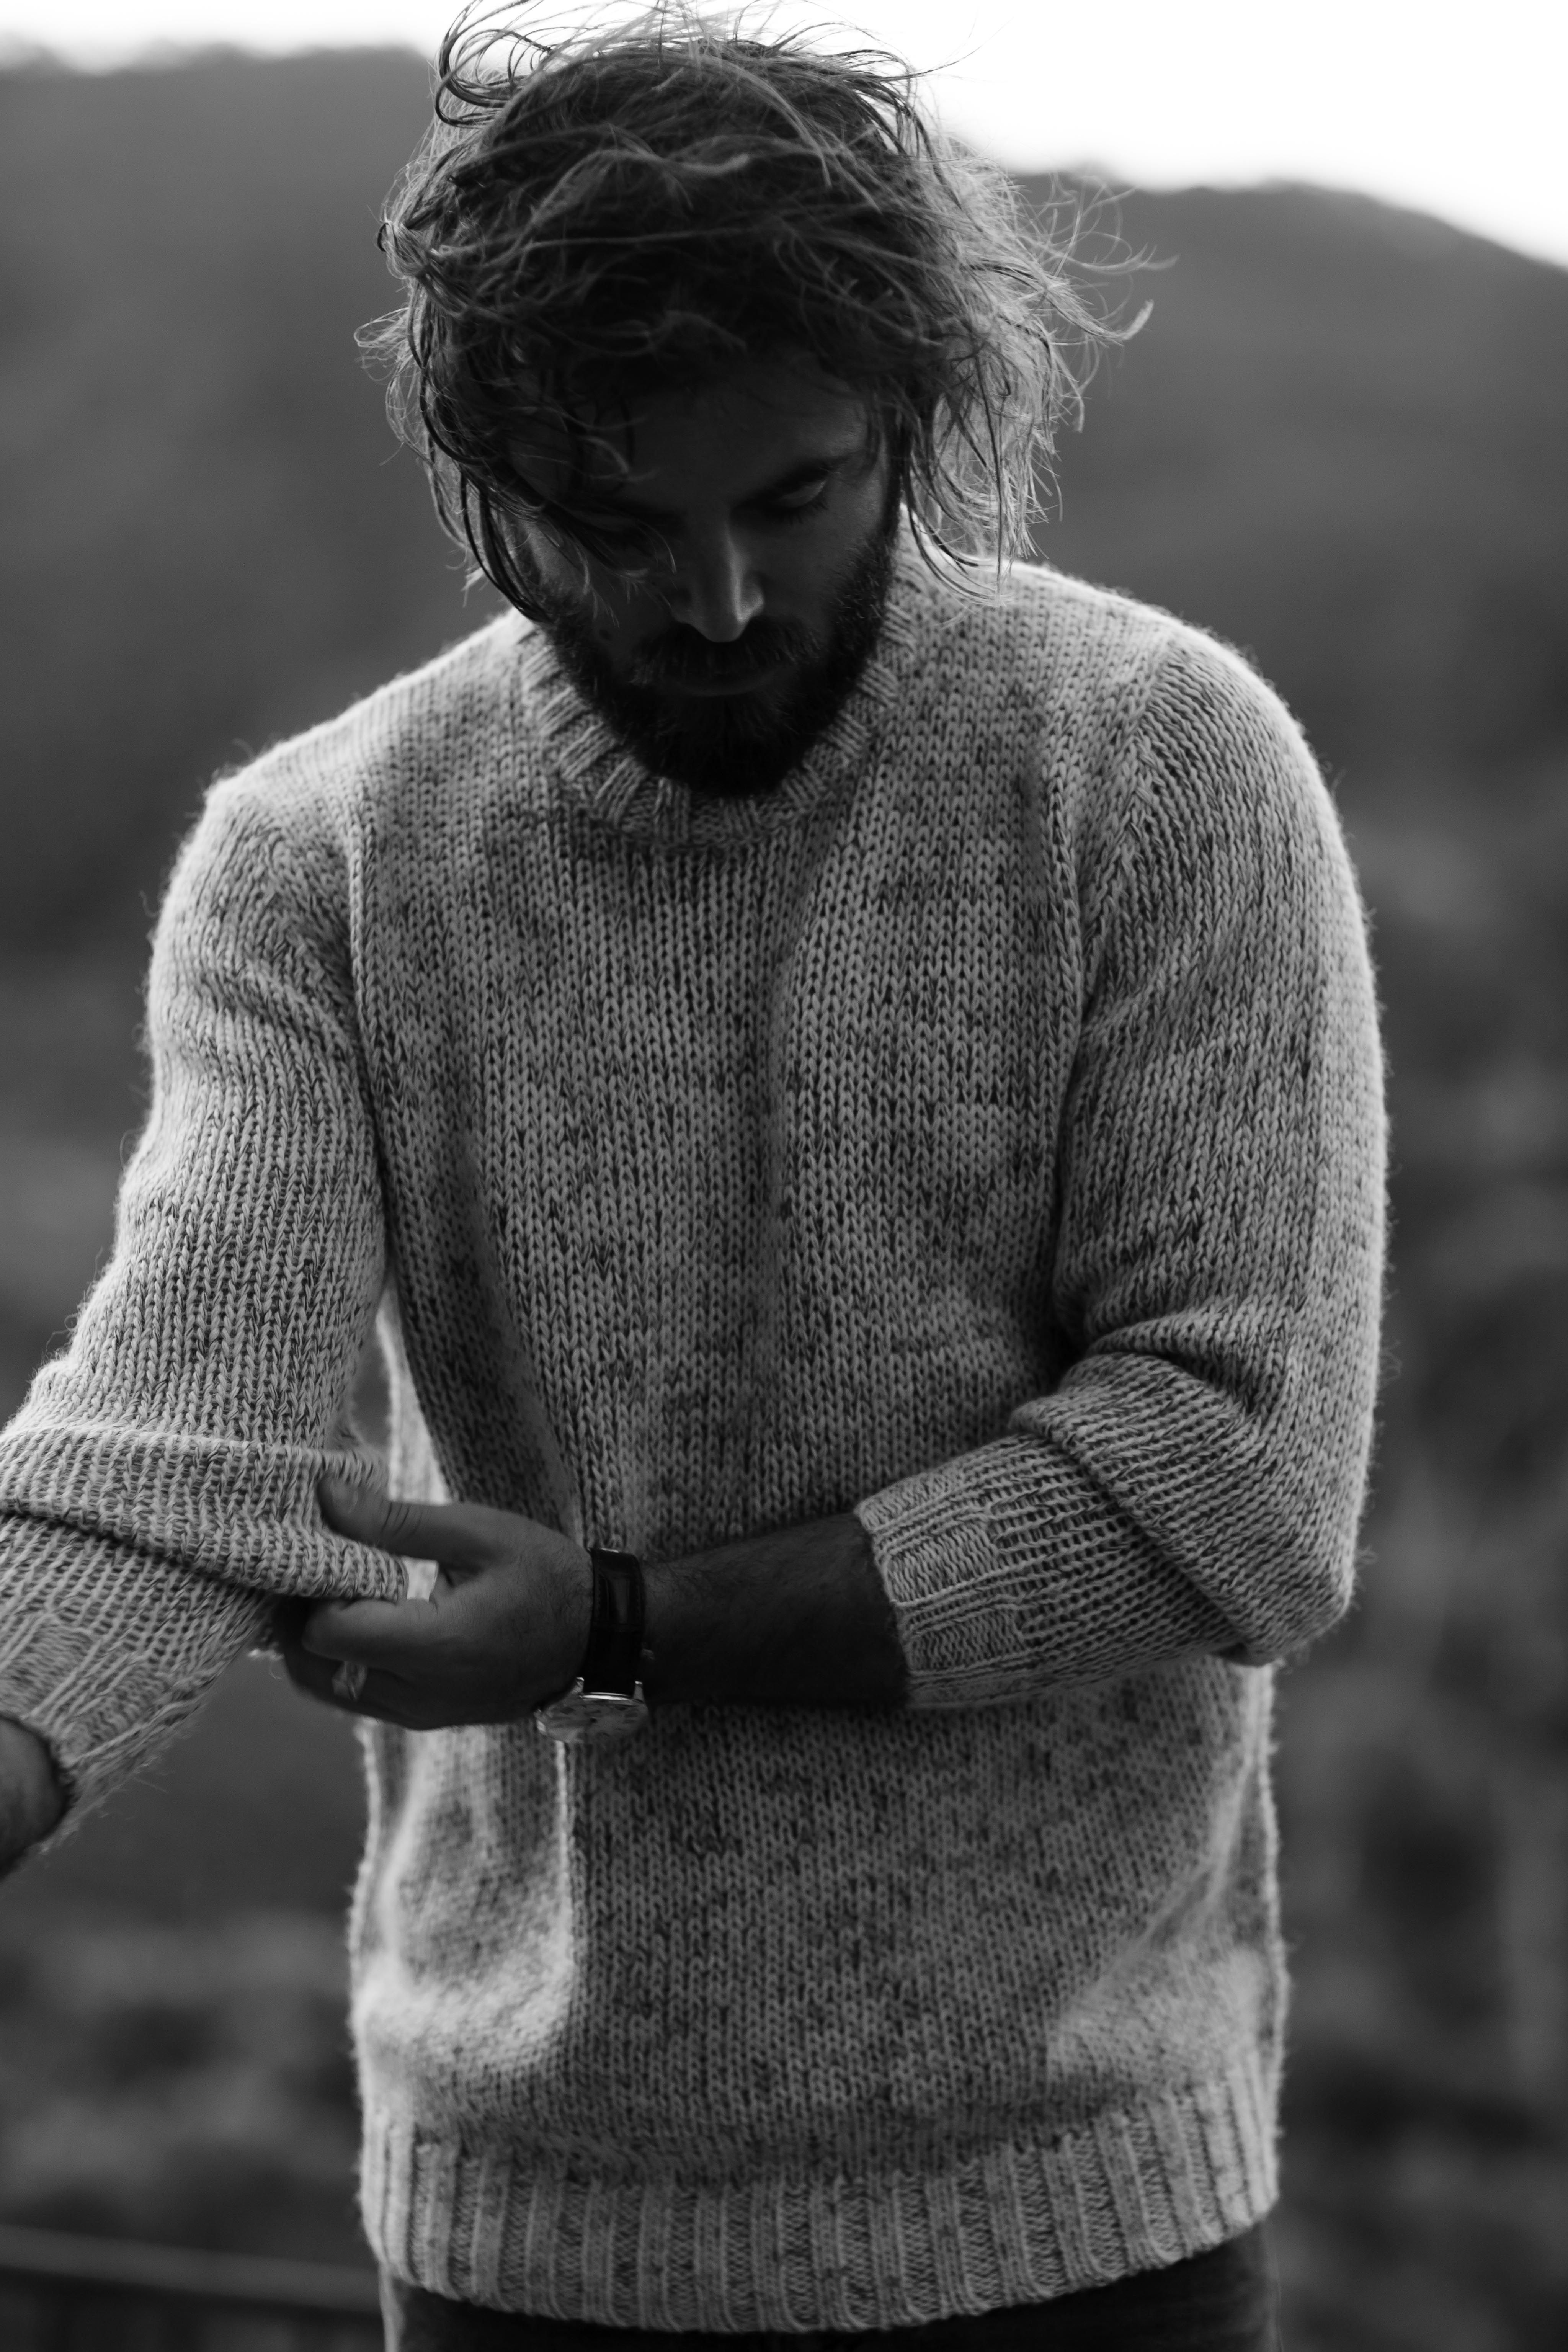 Interview with Angus Stone – The Lane